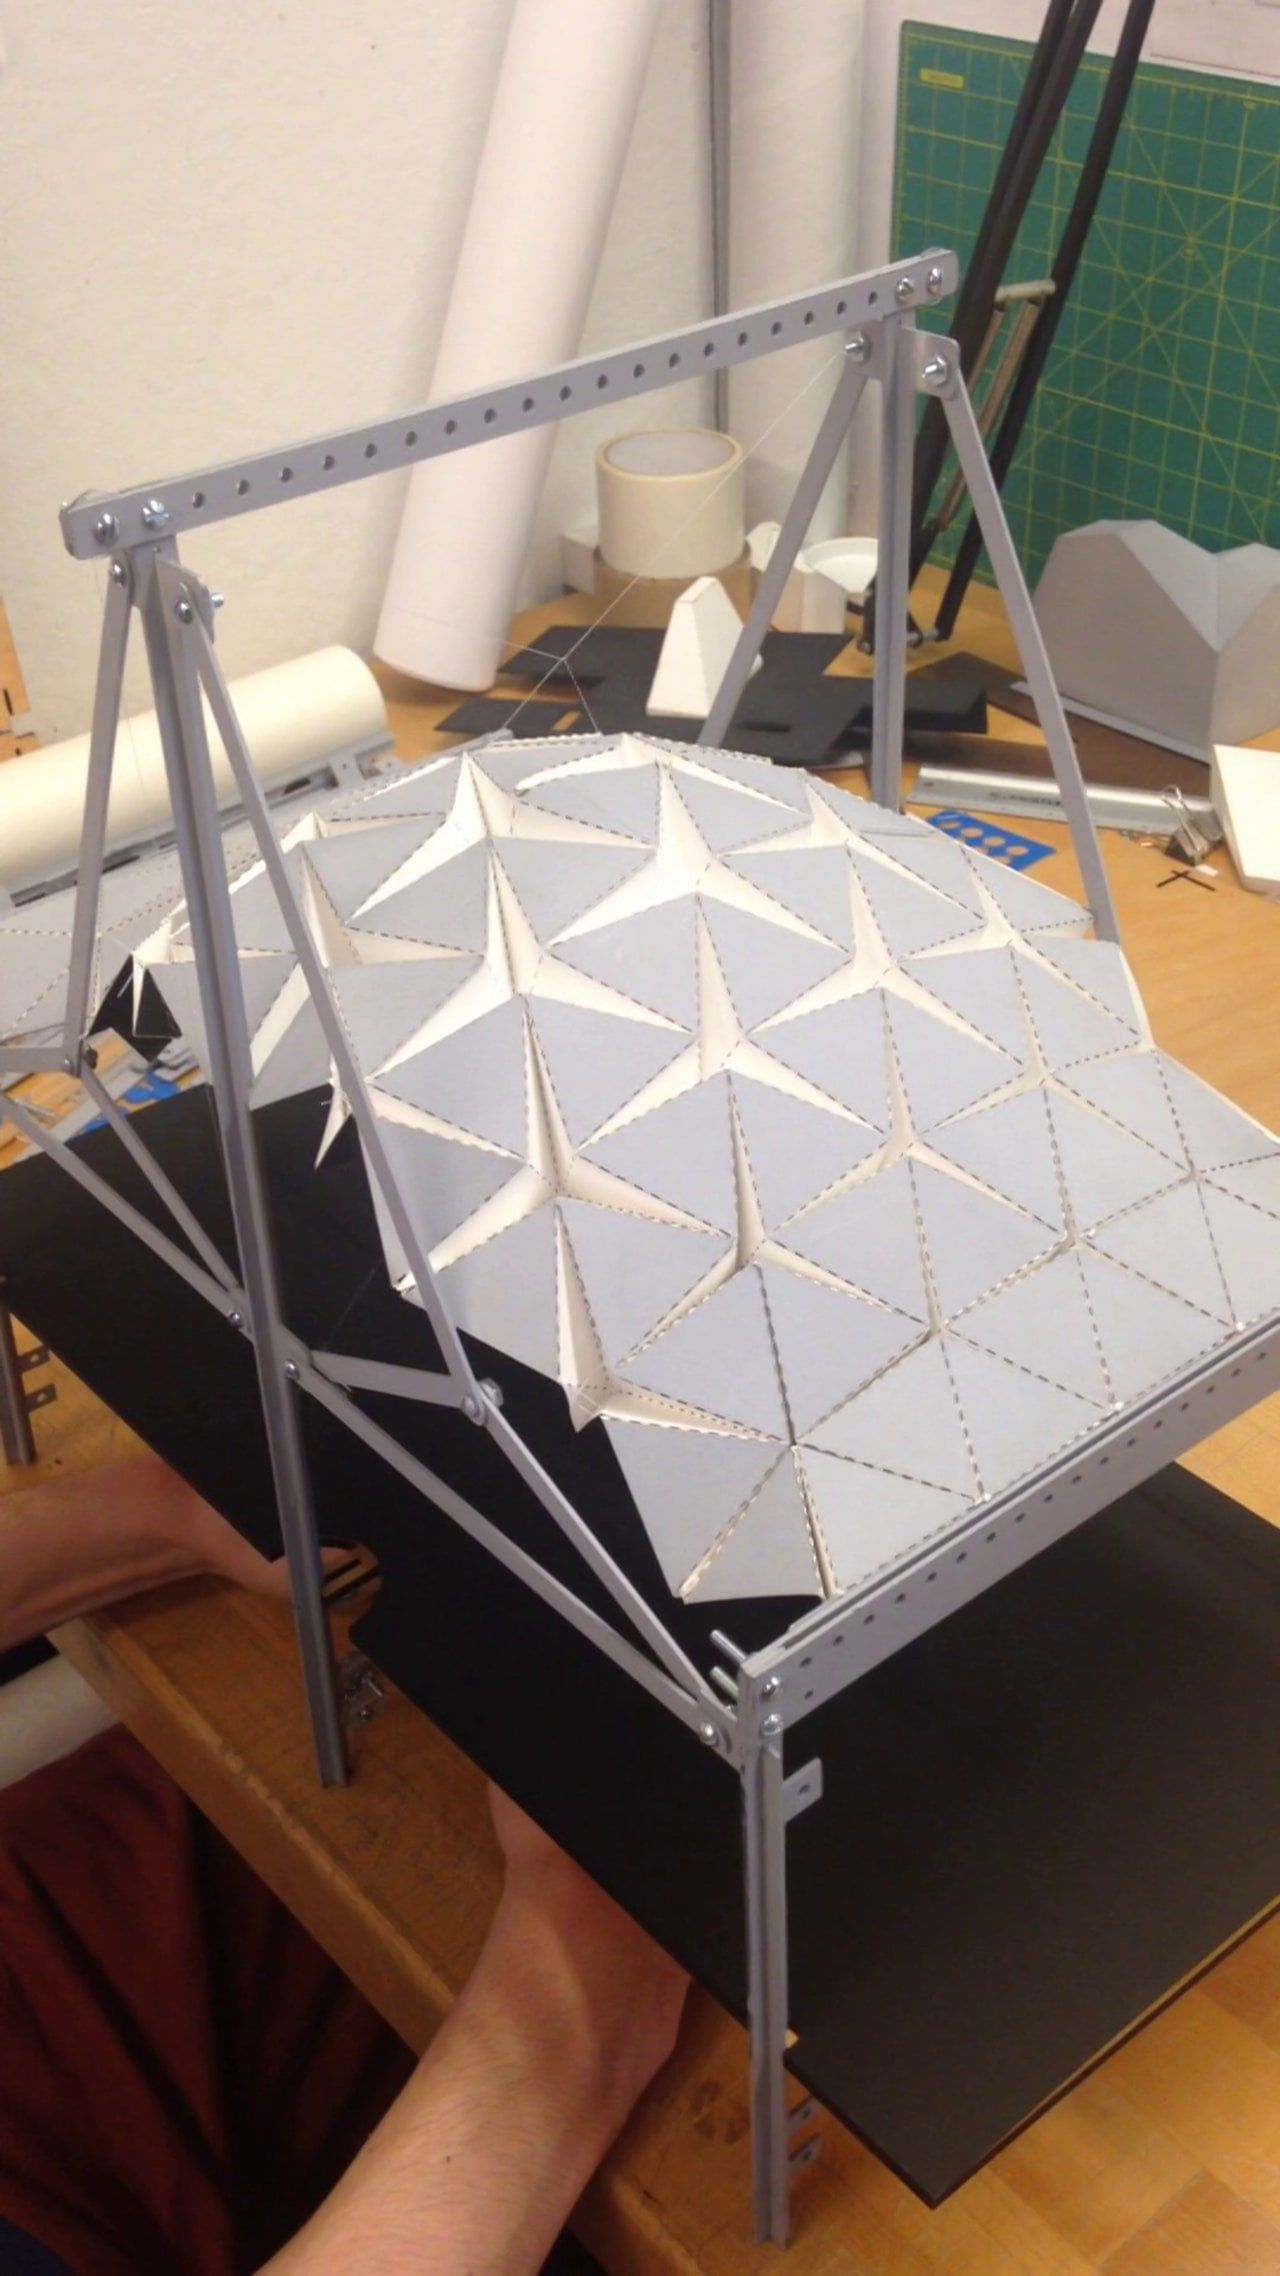 Tensile structure rigid origami expandable roof ... - photo#20